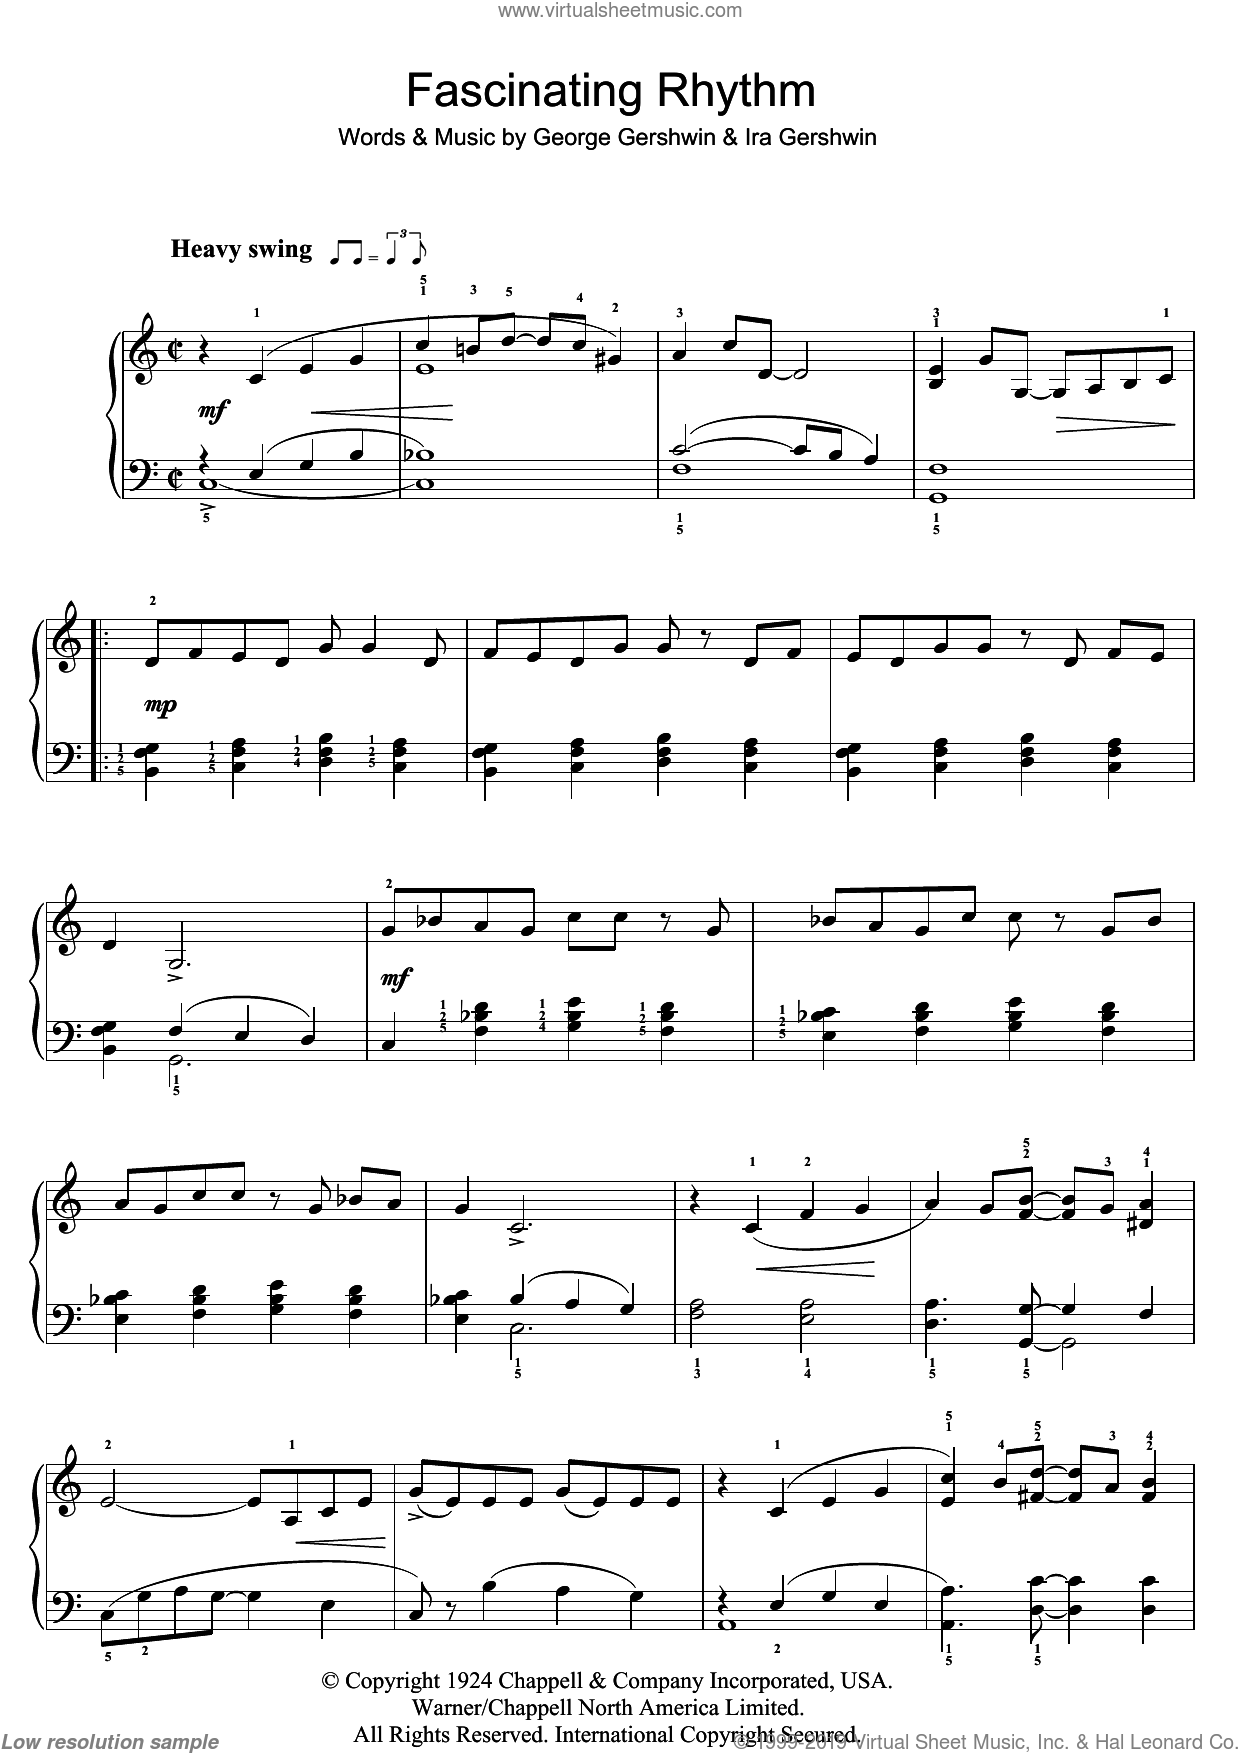 Fascinating Rhythm sheet music for piano solo by Ira Gershwin